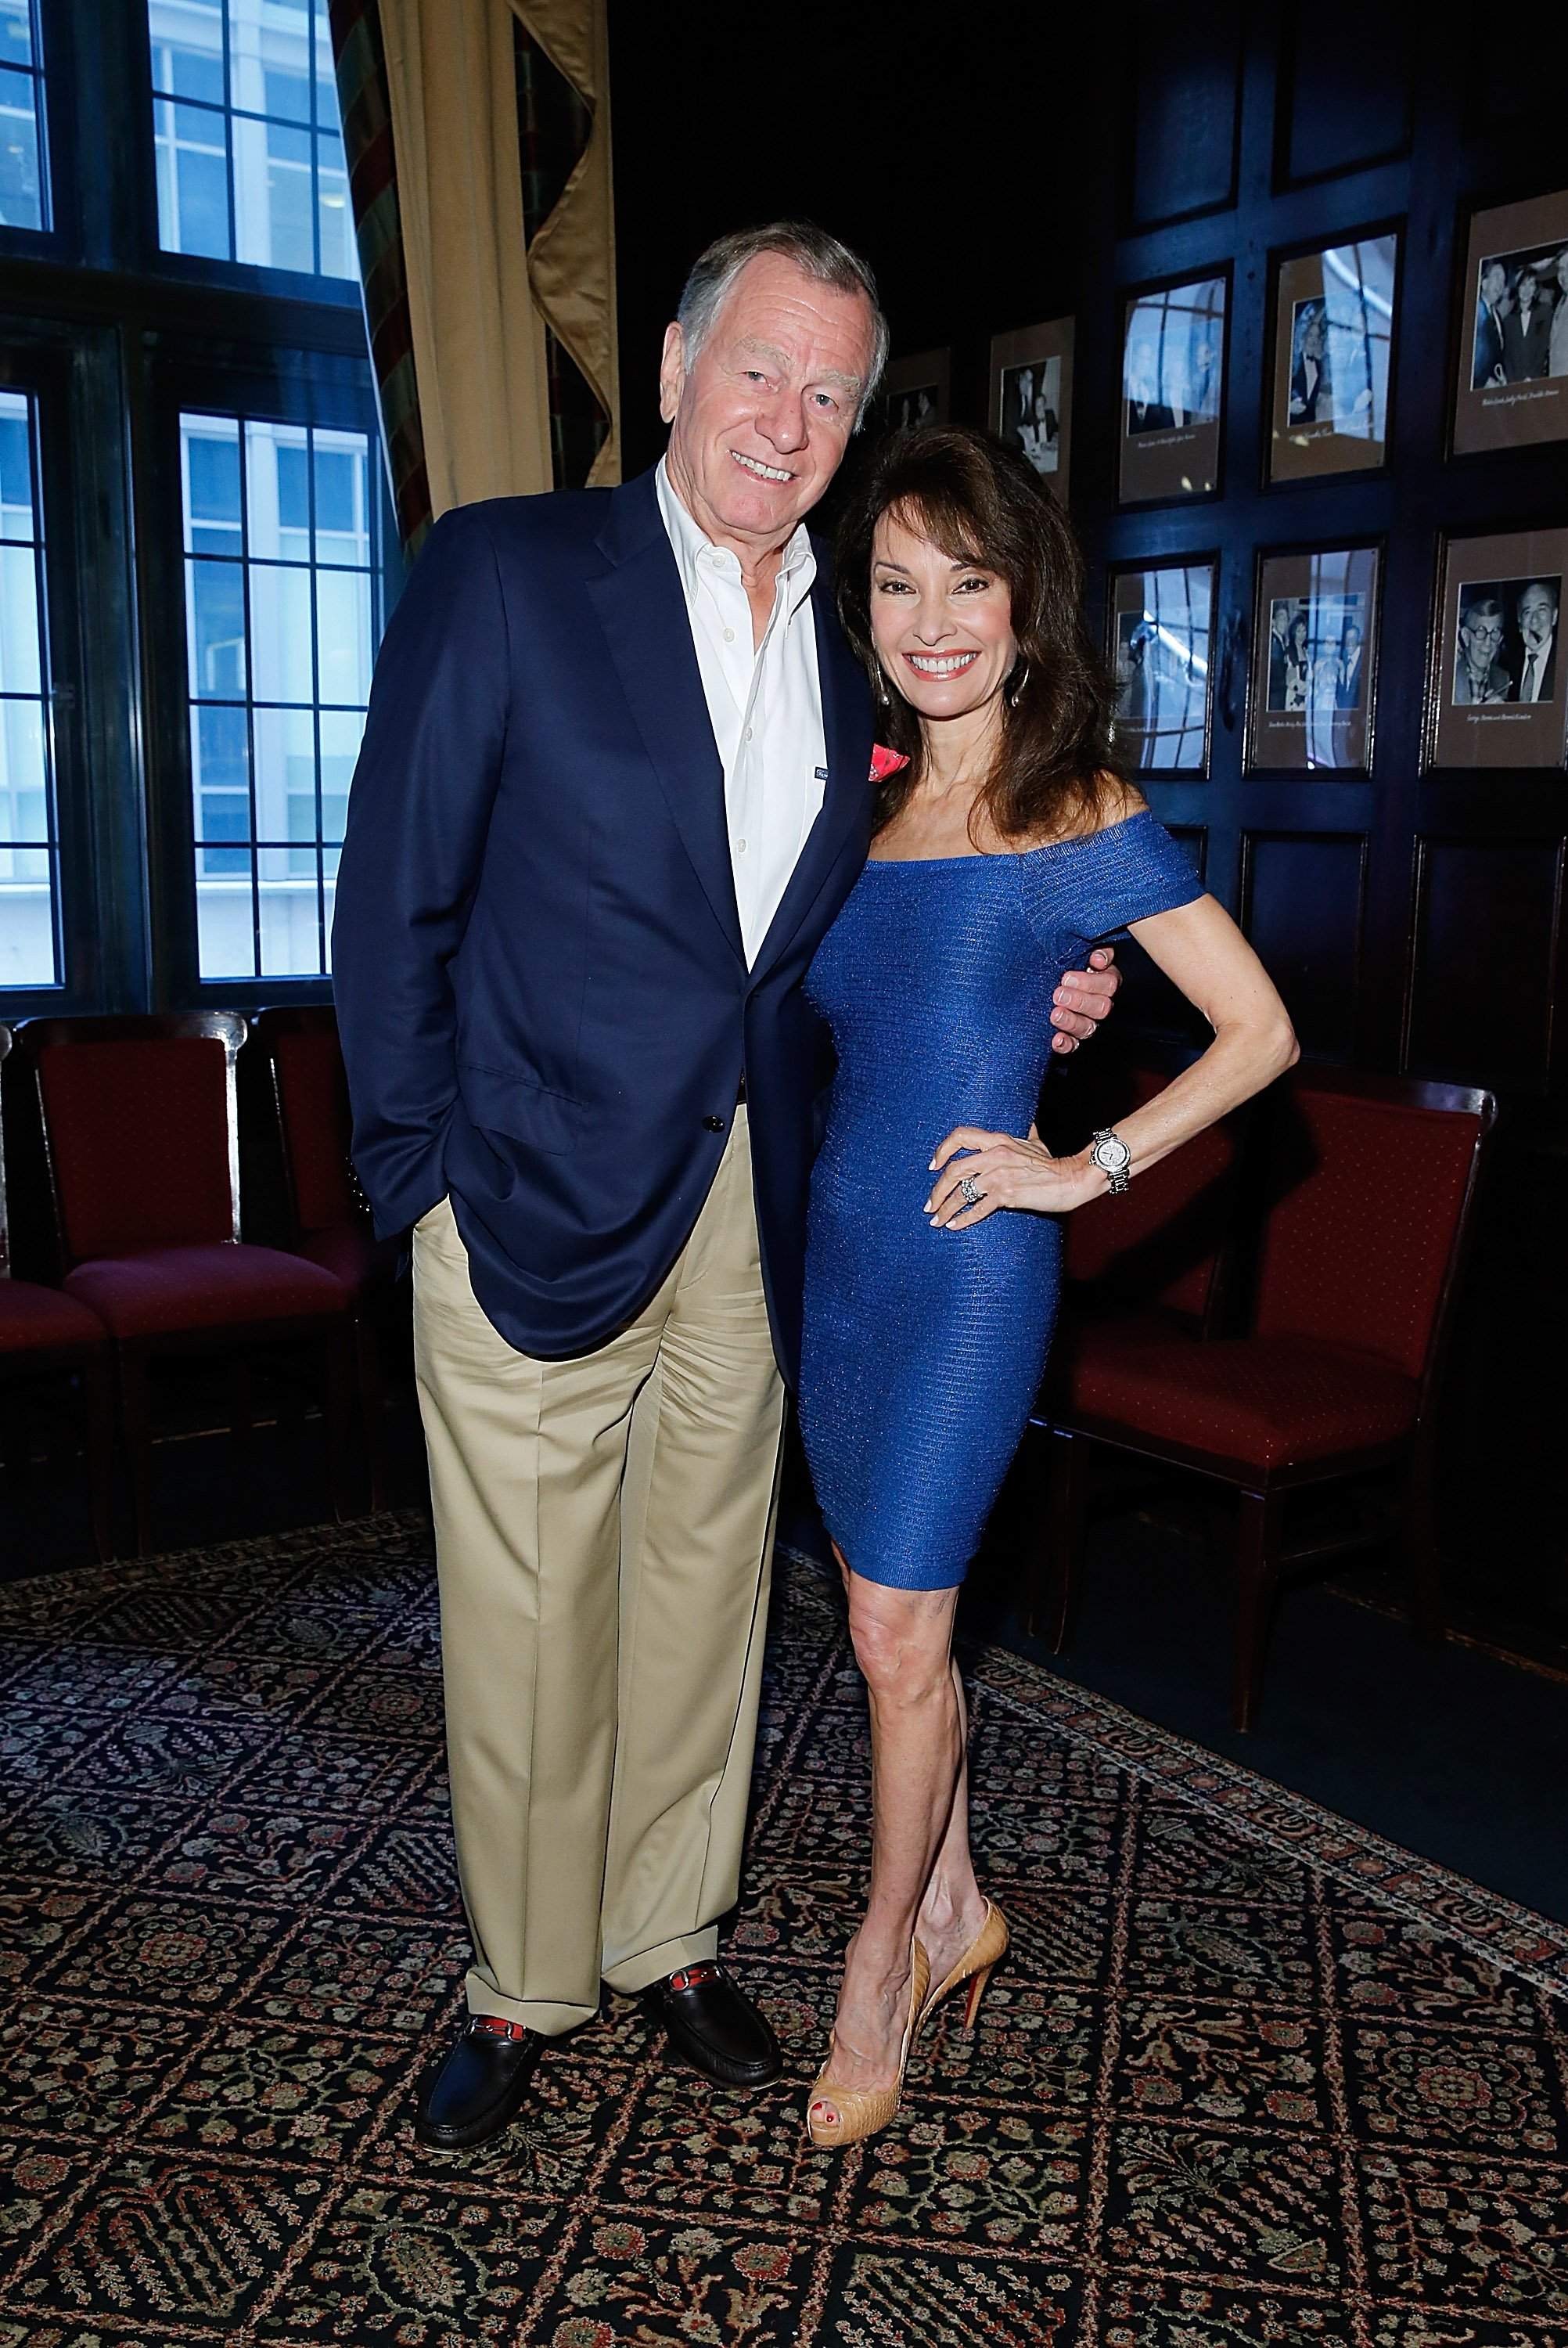 Helmut Huber and Susan Lucci attend a book launch event at New York Friars Club on June 3, 2014 in New York City | Photo: Getty Images